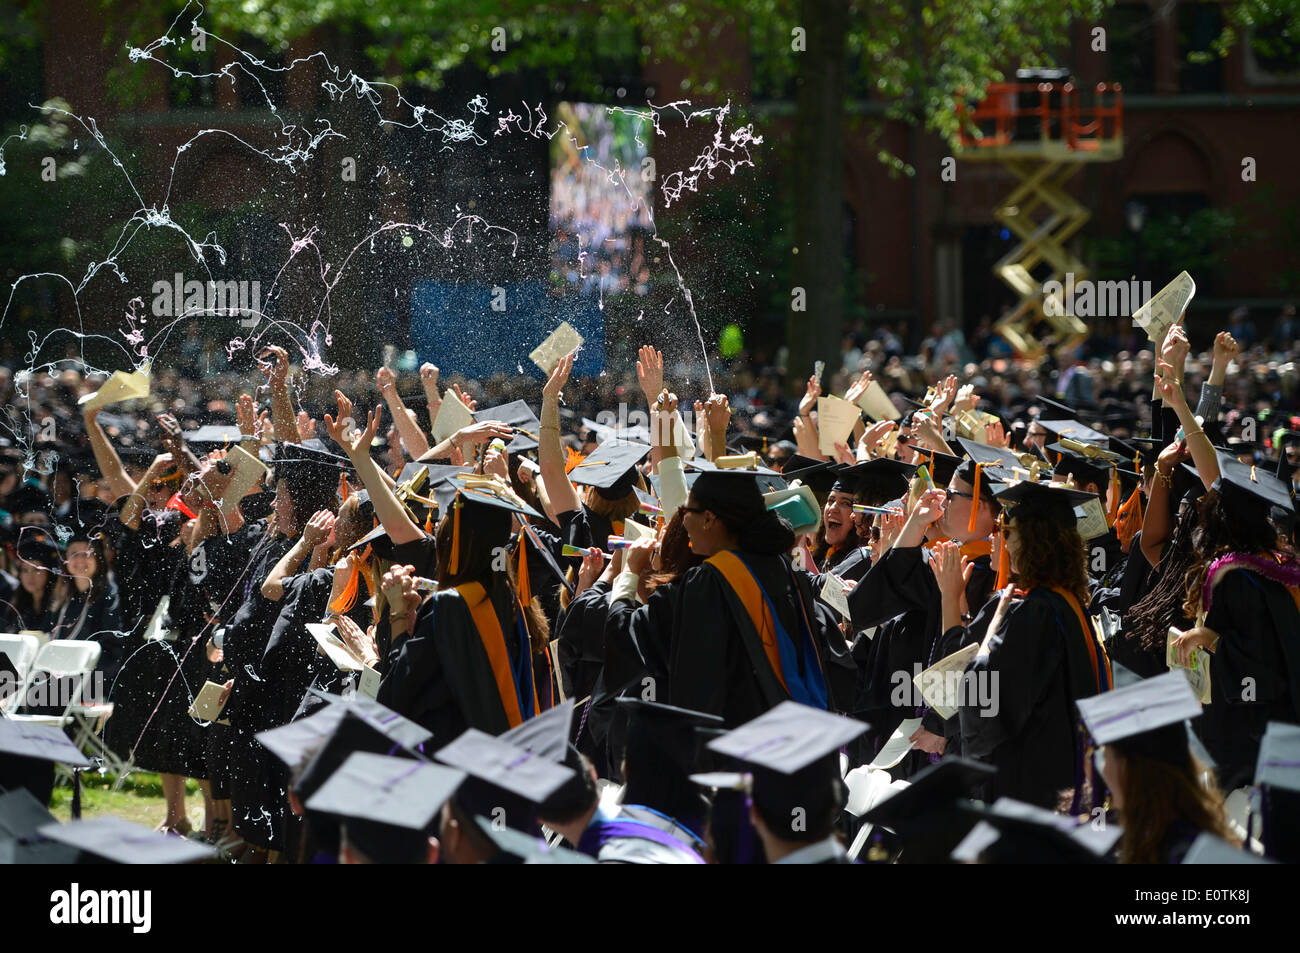 New Haven, USA. 19th May, 2014. Students of Yale University attend the 313th Commencement of Yale University at the Old Campus in New Haven, the United States, May 19, 2014. Twelve honorary doctorates and 3132 earned degrees were conferred on Monday during Yale's 313th Commencement ceremony, in addition to 253 provisional degrees for students who have yet to fully complete their study. Credit:  Wang Lei/Xinhua/Alamy Live News - Stock Image